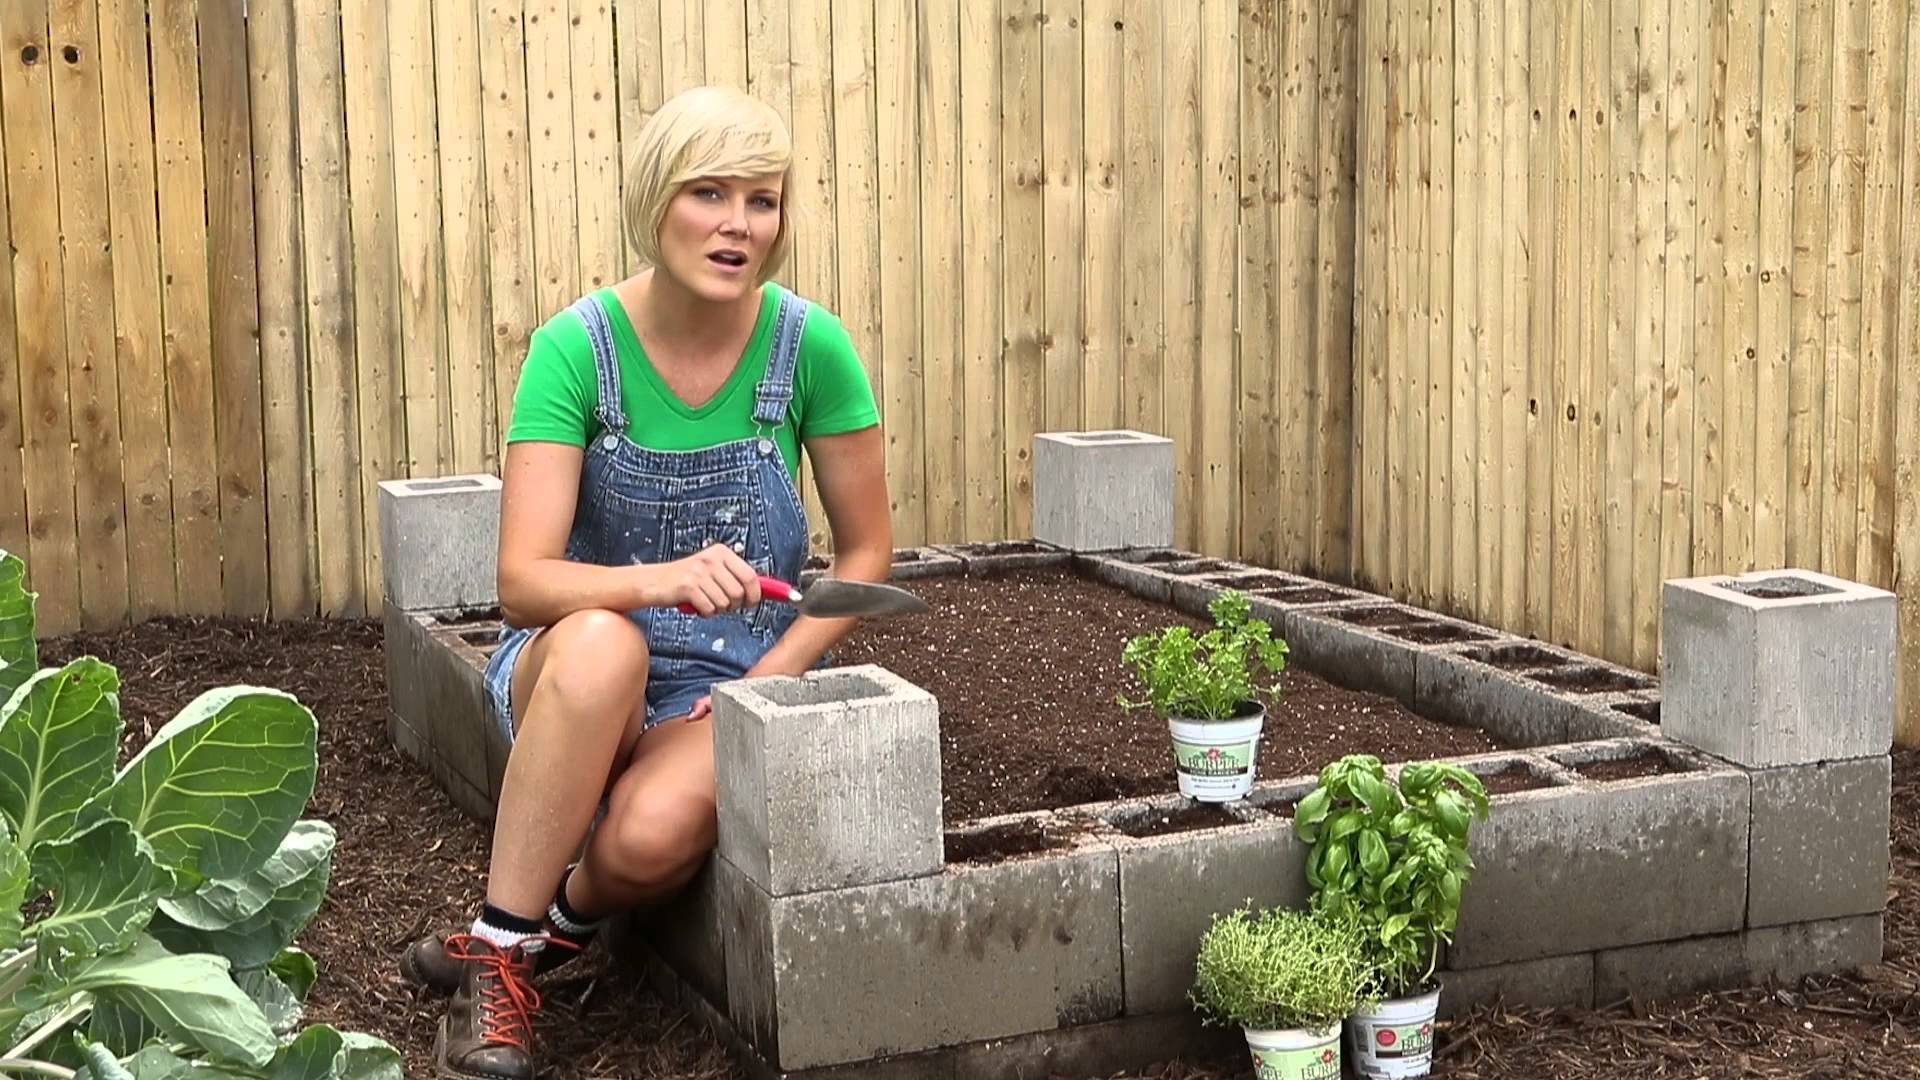 Building a Cement Block Raised Garden Bed | The Food Cop on small raised garden designs, best small vegetable garden designs, trellis designs, garden fence designs, raised bed shade gardens, raised planting beds, garden enclosure designs, garden box designs, berry garden designs, green wall designs, raised beds for gardens, water garden designs, rock garden designs, simple landscape designs, wheelchair garden bed designs, small perennial garden designs, raised gardens for handicapped, shade garden designs, knot garden designs, xeriscaping designs,